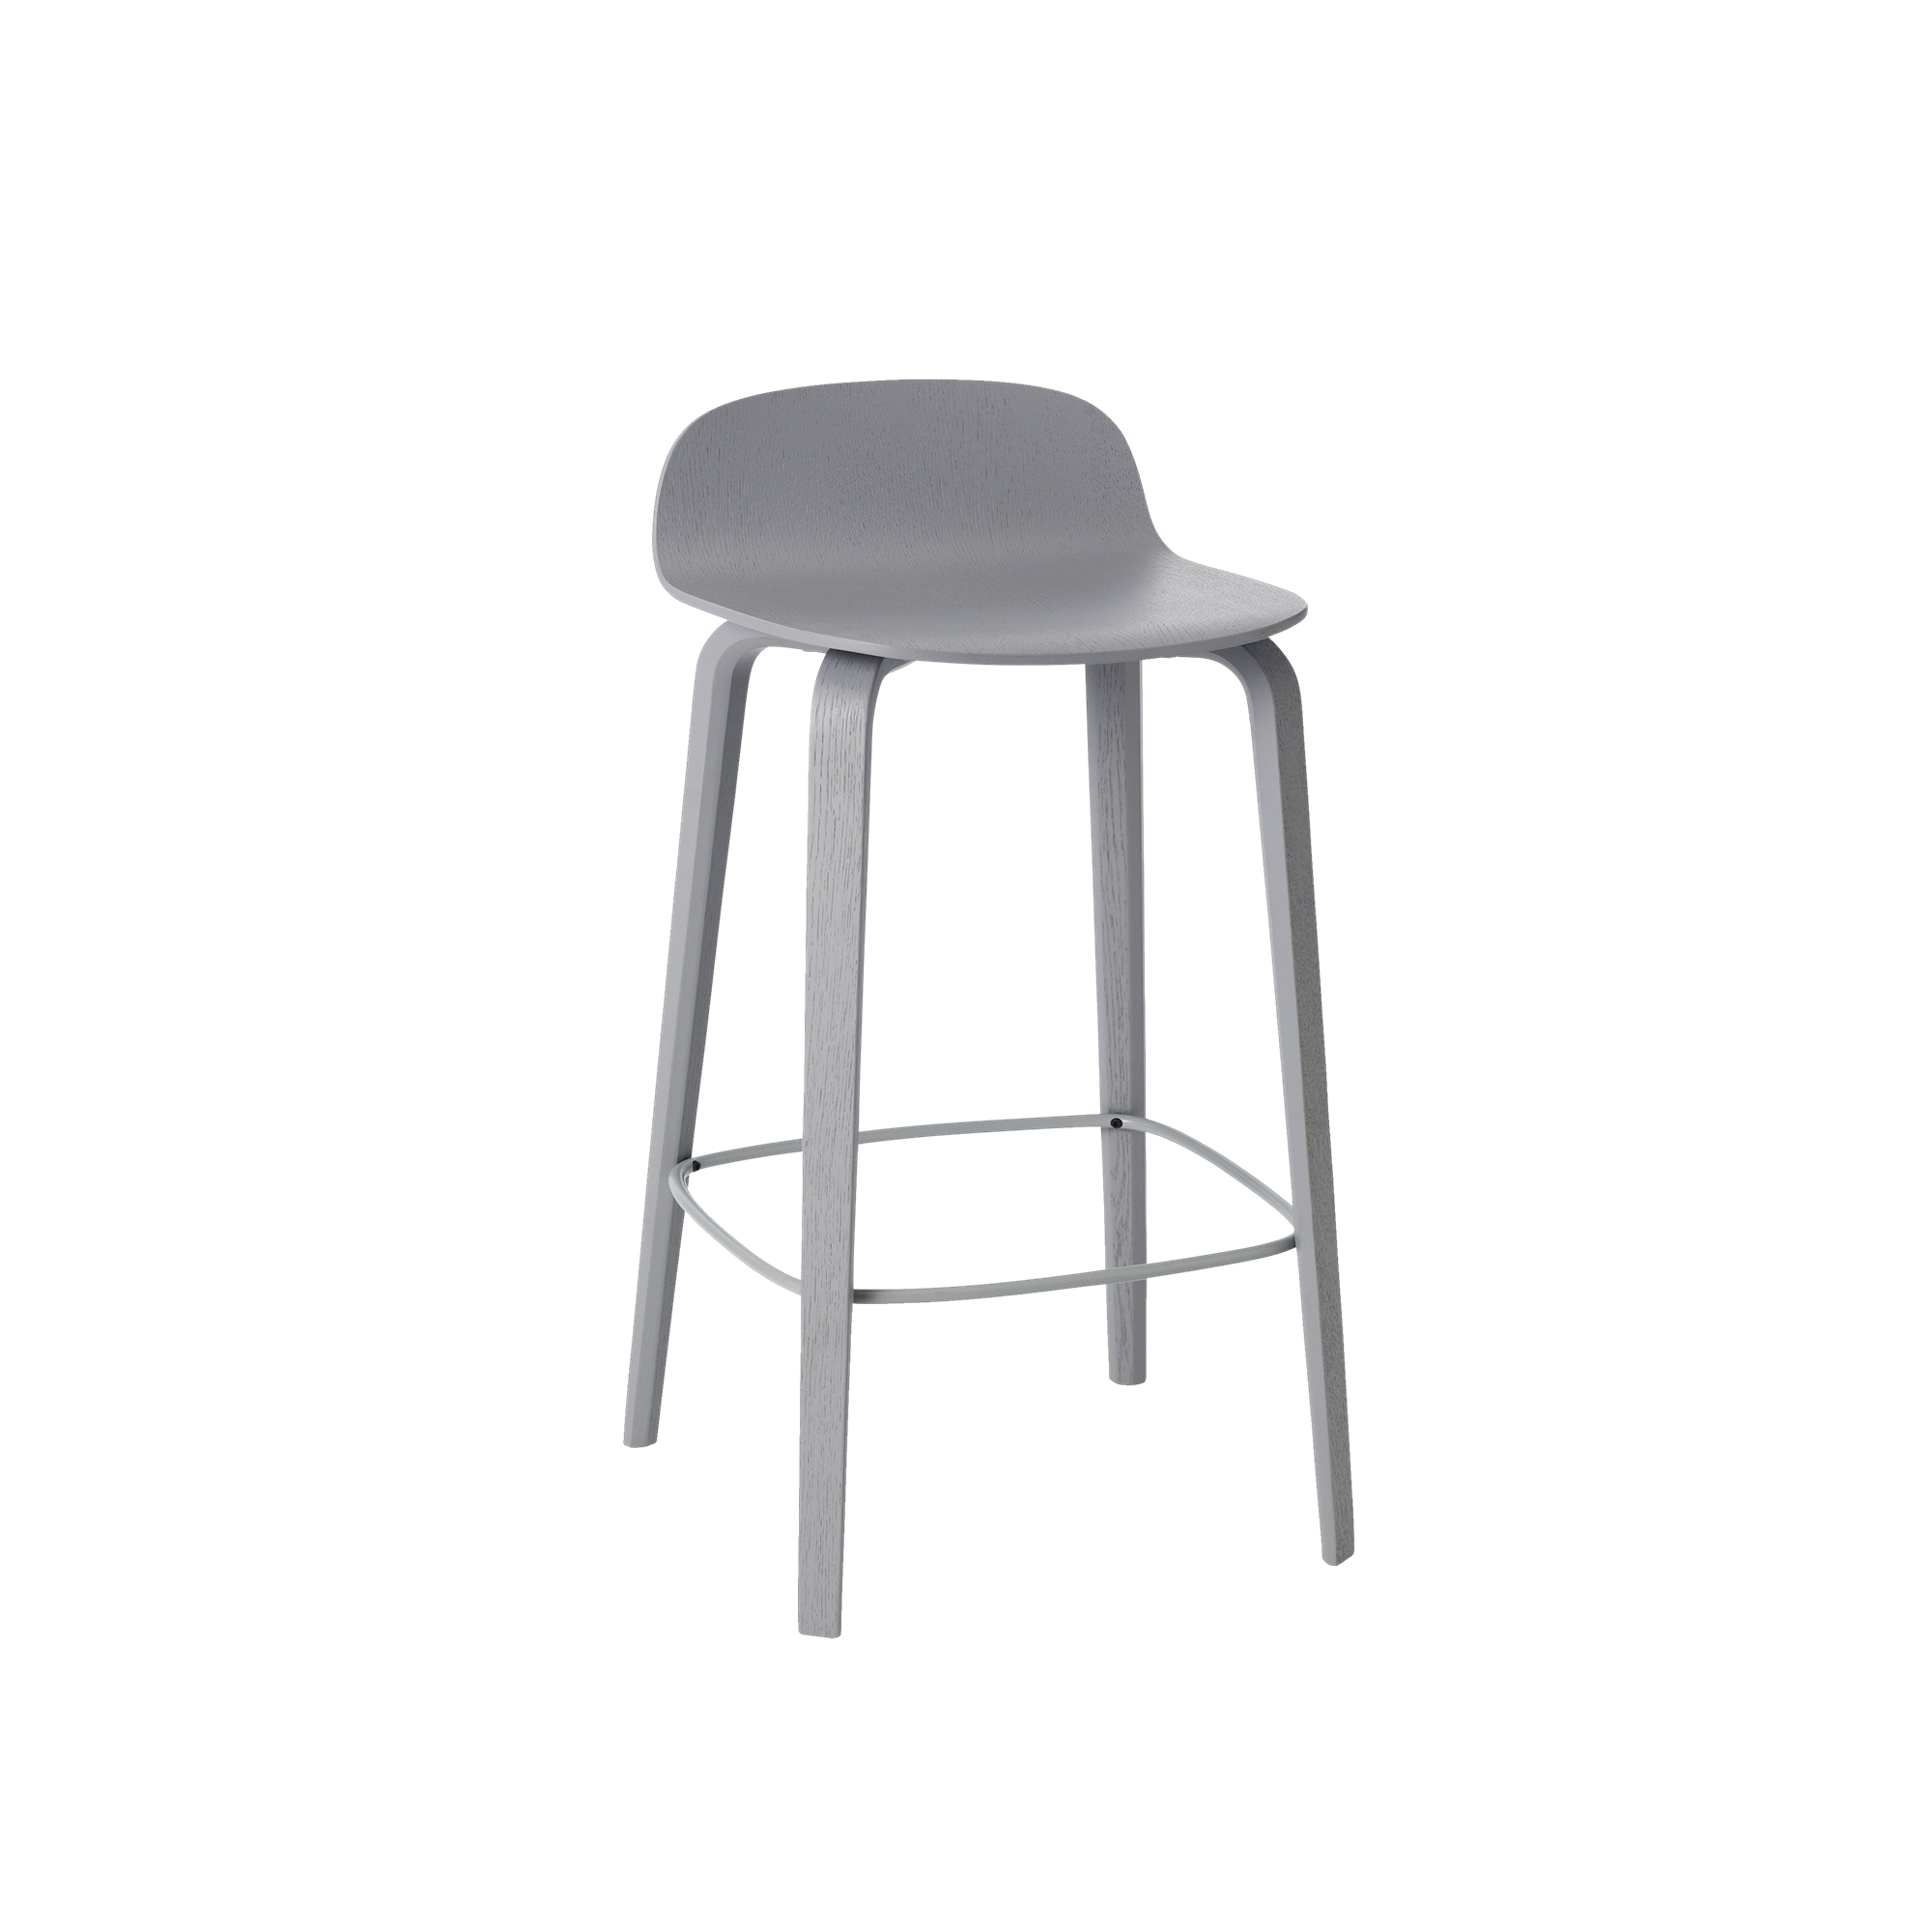 With Its Small Curved Back And Long Elegant Legs The Visu Bar Stool Is Perfect For A Kitchen Counter Or Rest Bar Stools Designer Bar Stools Counter Bar Stools